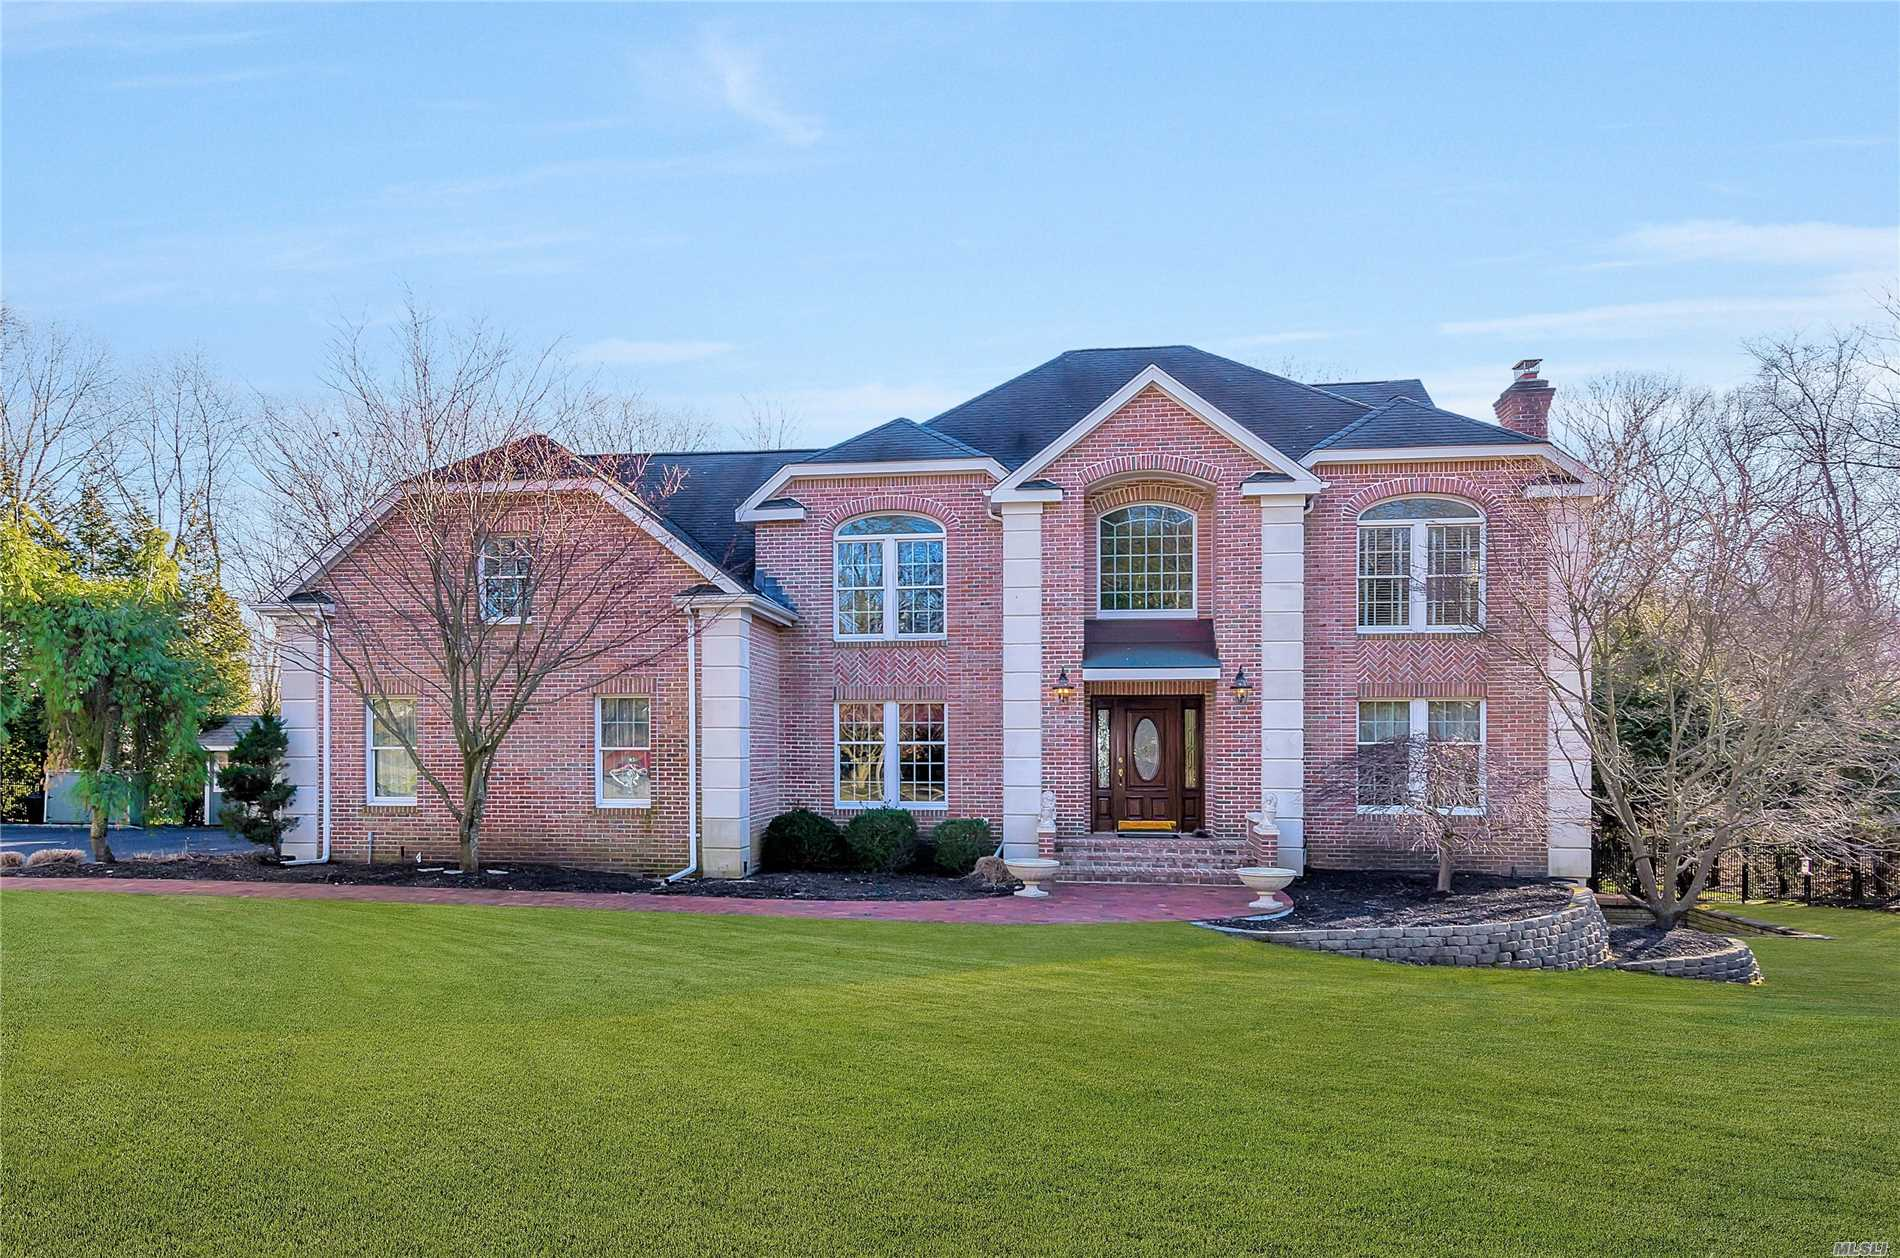 Stately Colonial Features: Spacious Floor Plan, Entry Foyer, Formal Living Room/Fireplace, Expanded Formal Dining Room, Eat In Kitchen, Beautiful Windows, Family Room/Fireplace and Vaulted Ceiling, Den, Laundry Room, Hard Wood Floors Throughout, 4 Bedrooms, 2 1/2 Baths, Dual Staircase, 500 Amp Service, Basement Features A Legal 1 Bedroom Apartment with EIK, Den, Bath, Laundry and Storage, Backyard Privacy, Ing Heated Gunite Pool/Waterfall, Mahogany Deck/Hot Tub, the list goes on......